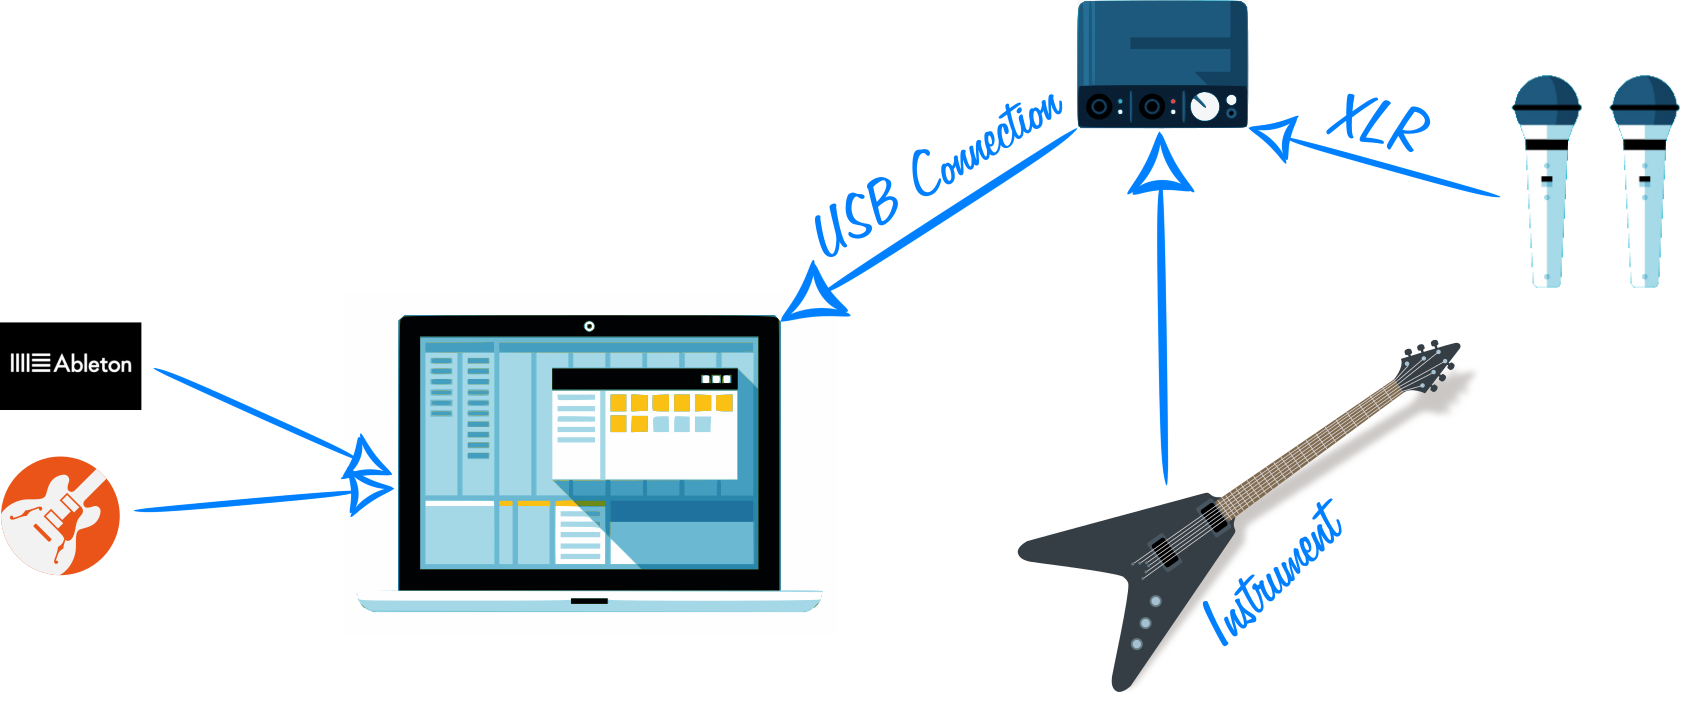 Laptop to USB Connection with Microphones